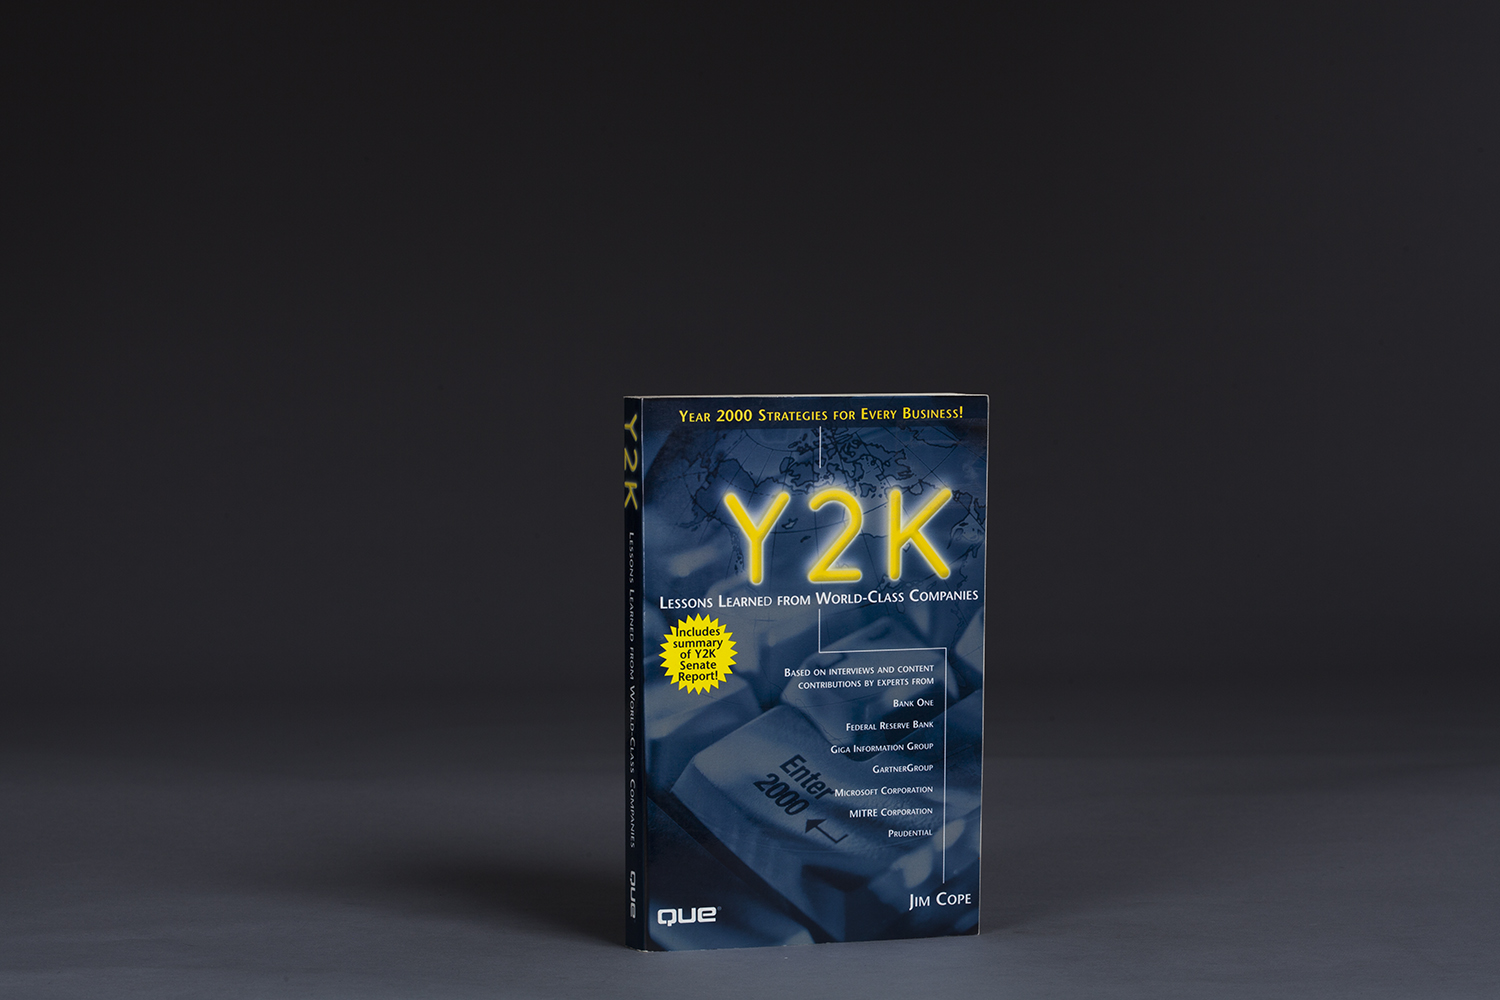 Y2K Lessons Learned from World Class Companies - 0529 Cover.jpg